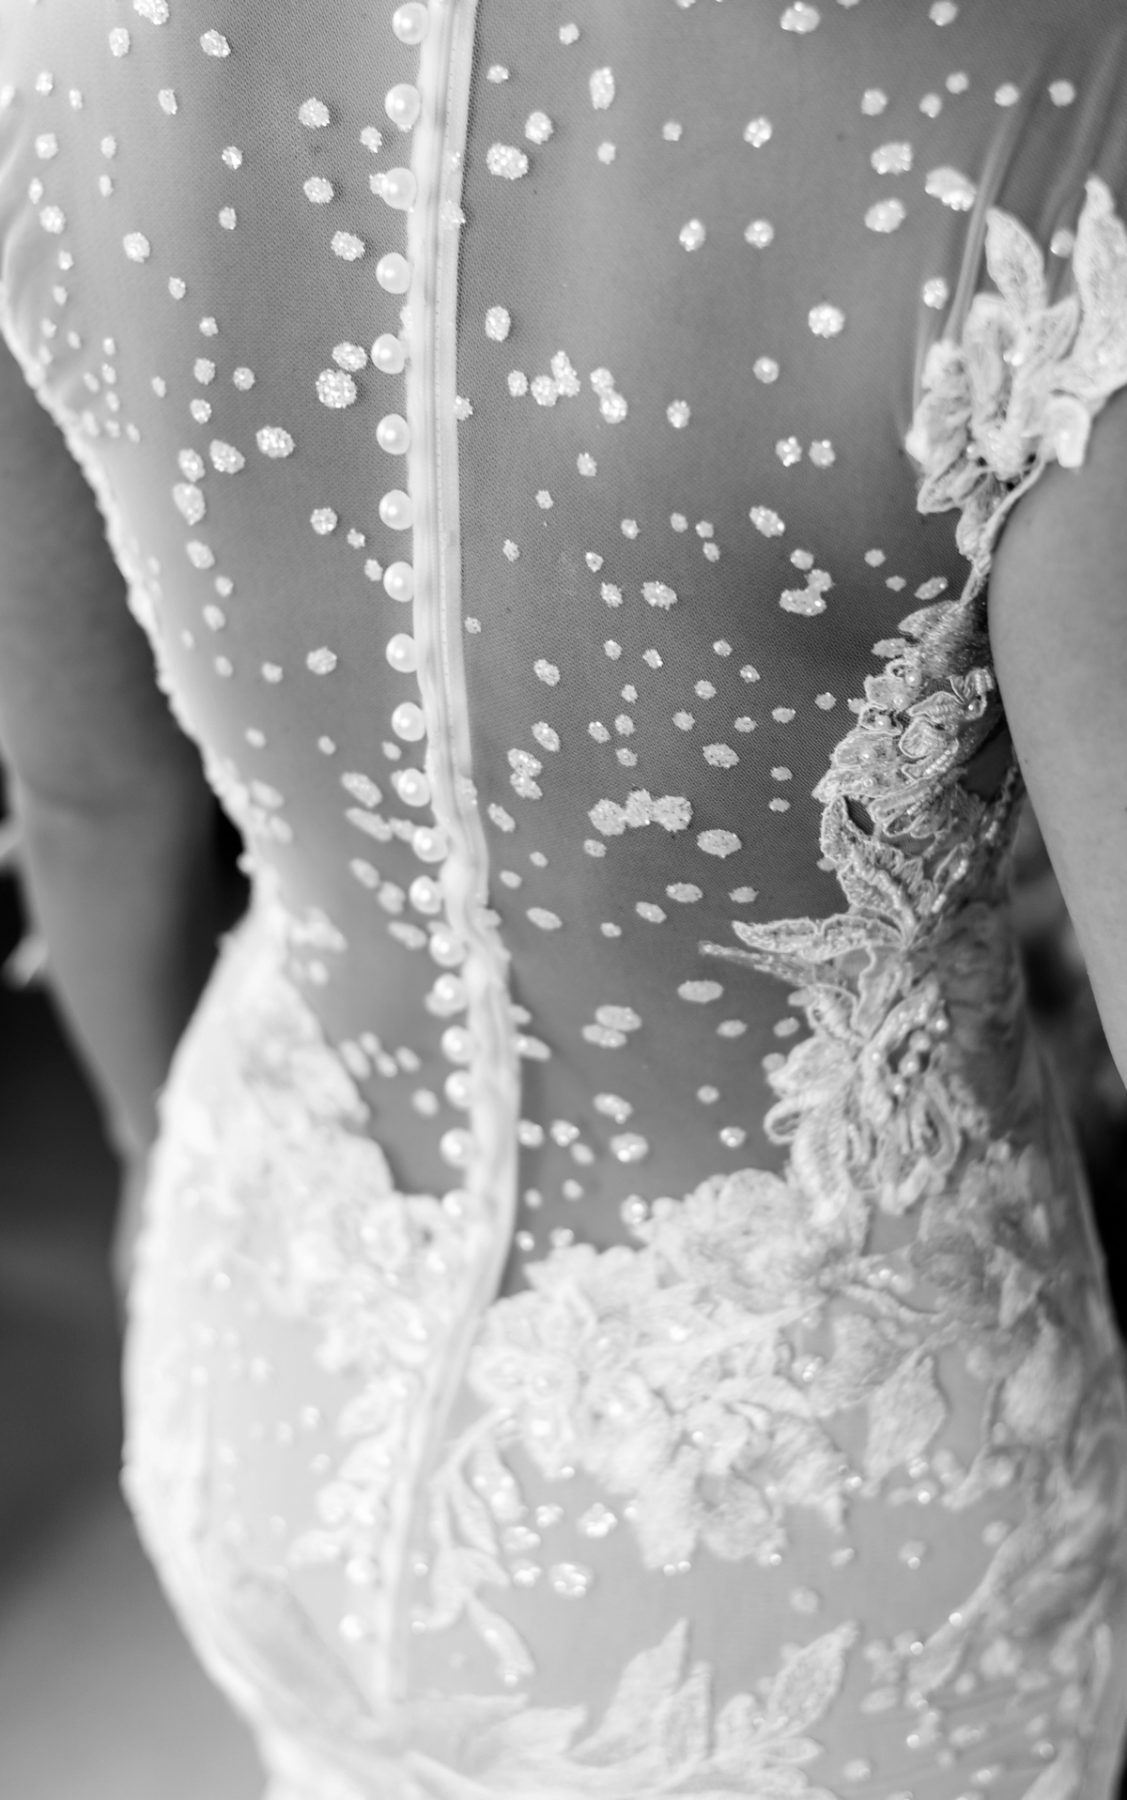 Inspiration Pittsburgh Wedding Ideas From Burgh Brides In 2020 Wedding Dresses Lace Ballgown Dream Wedding Dress Vintage Wedding Dresses Unique